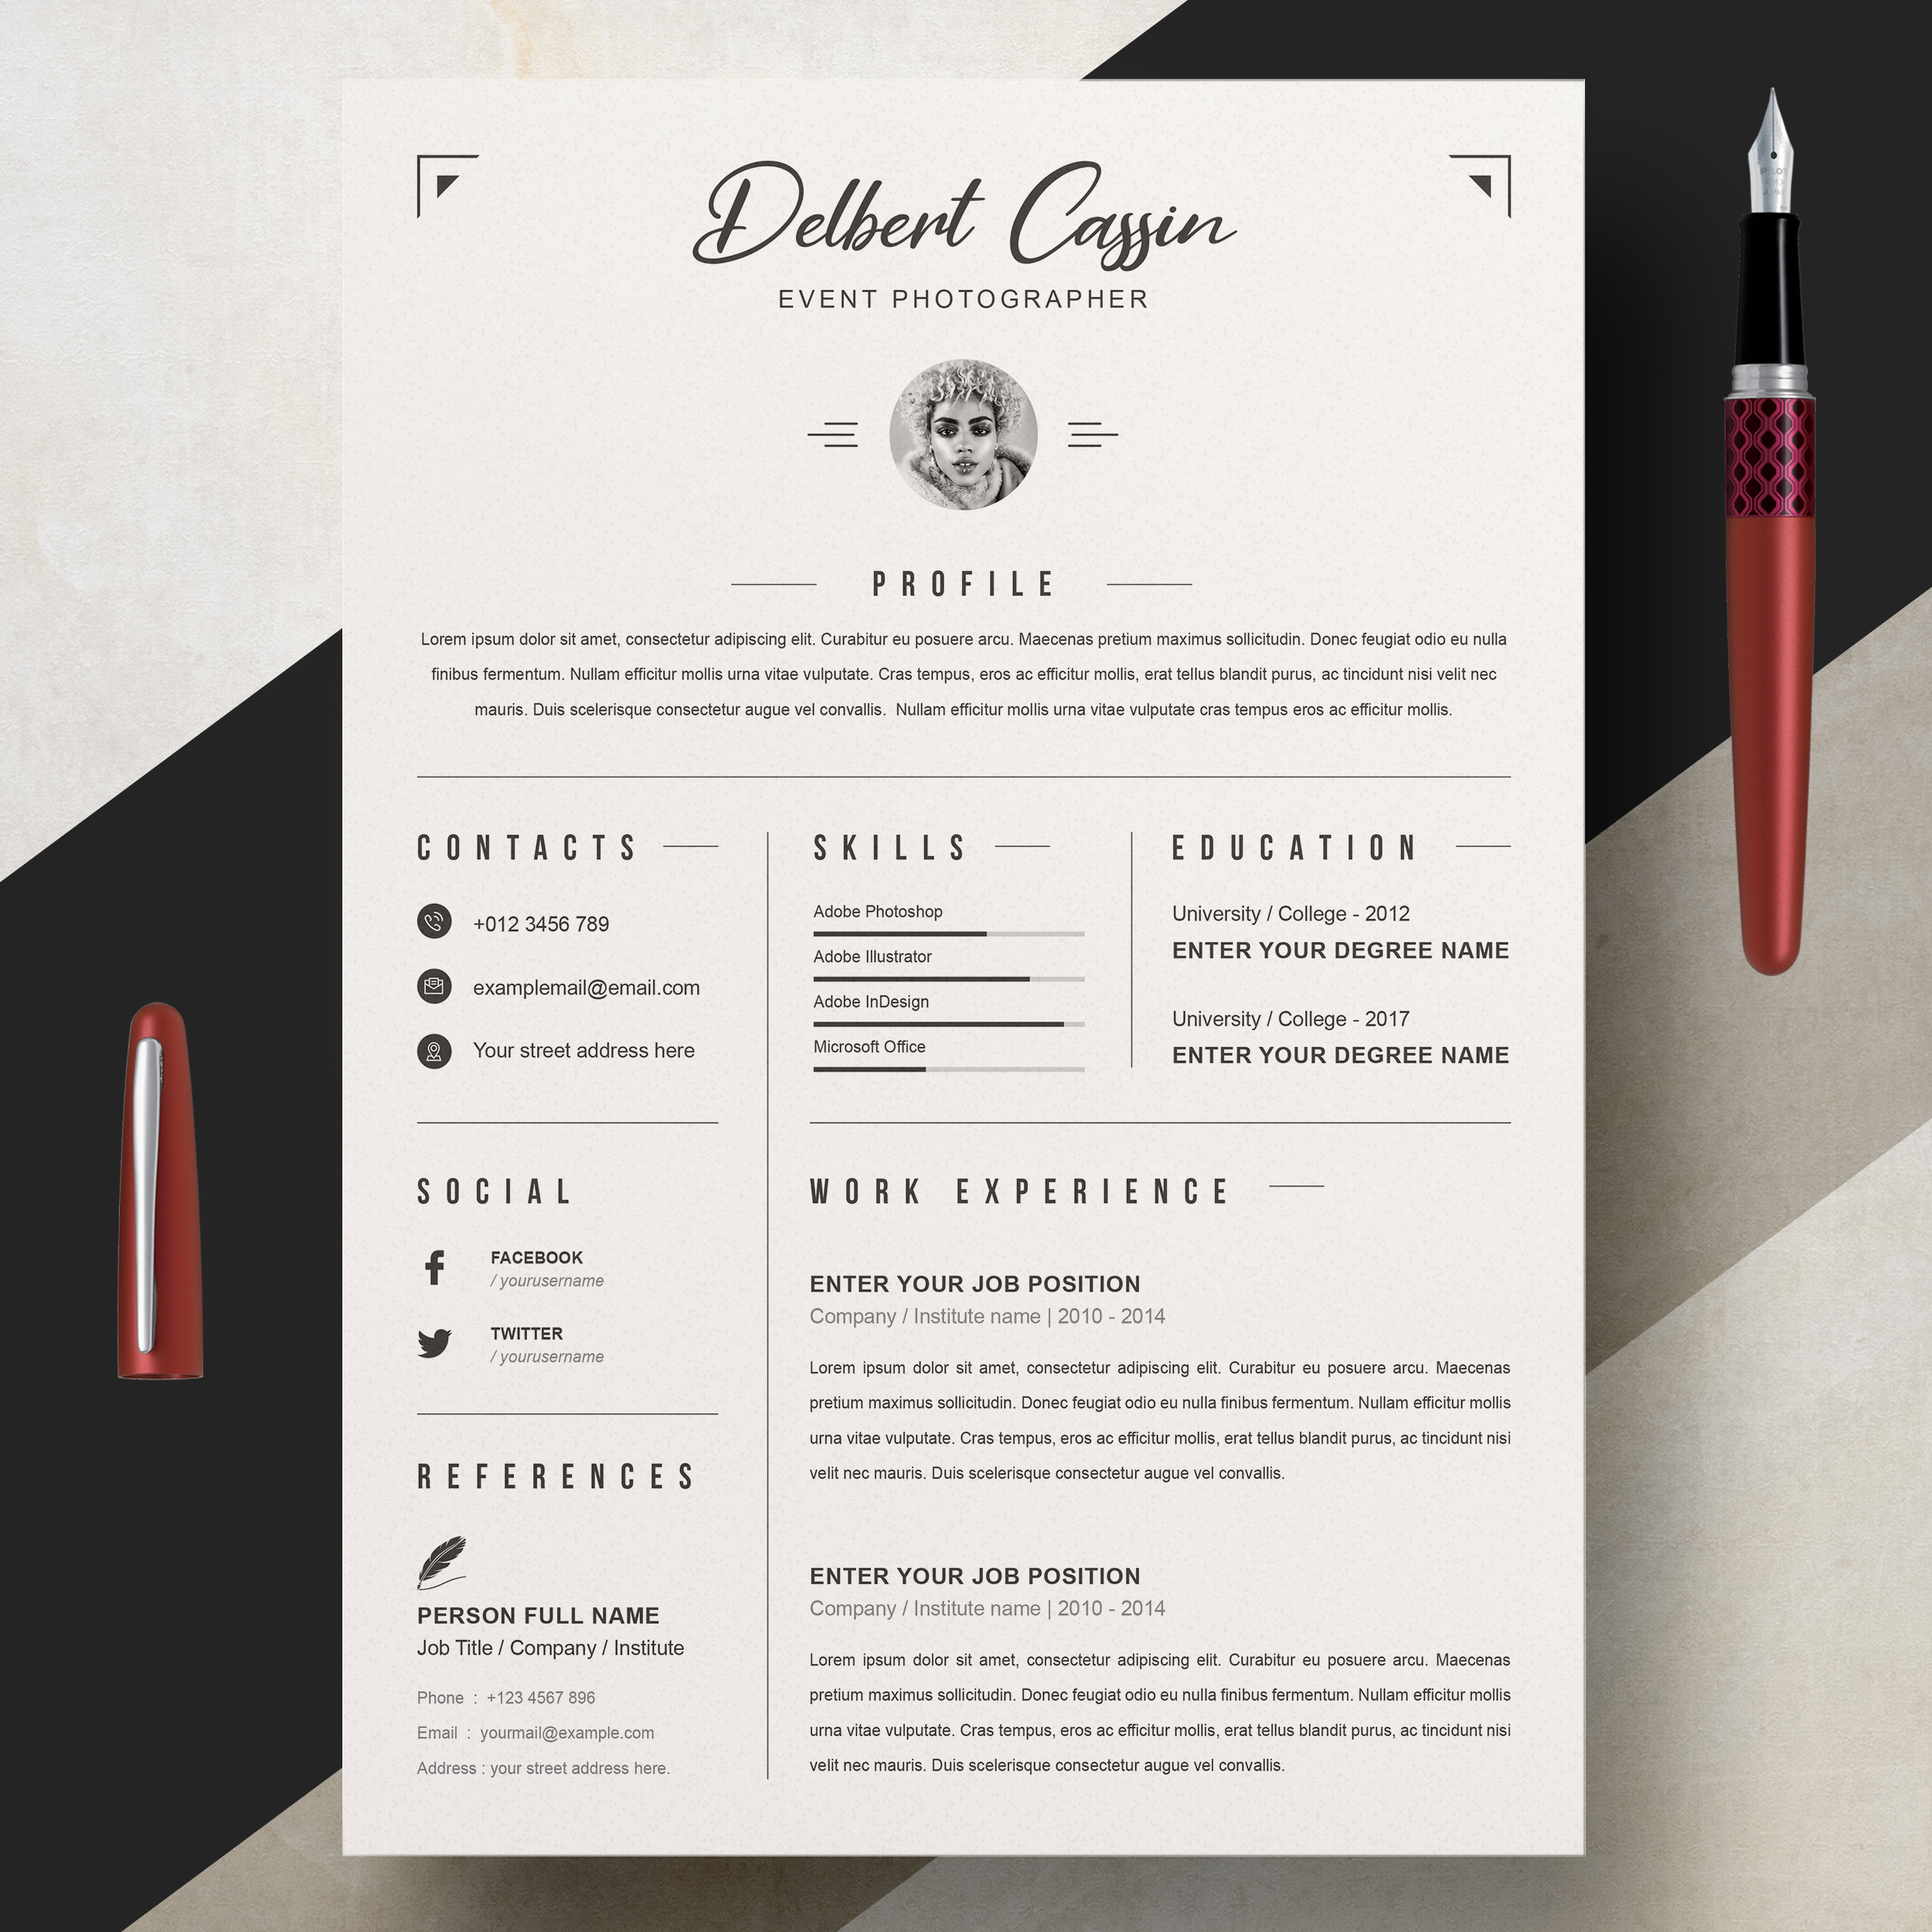 Event Photographer Resume Template